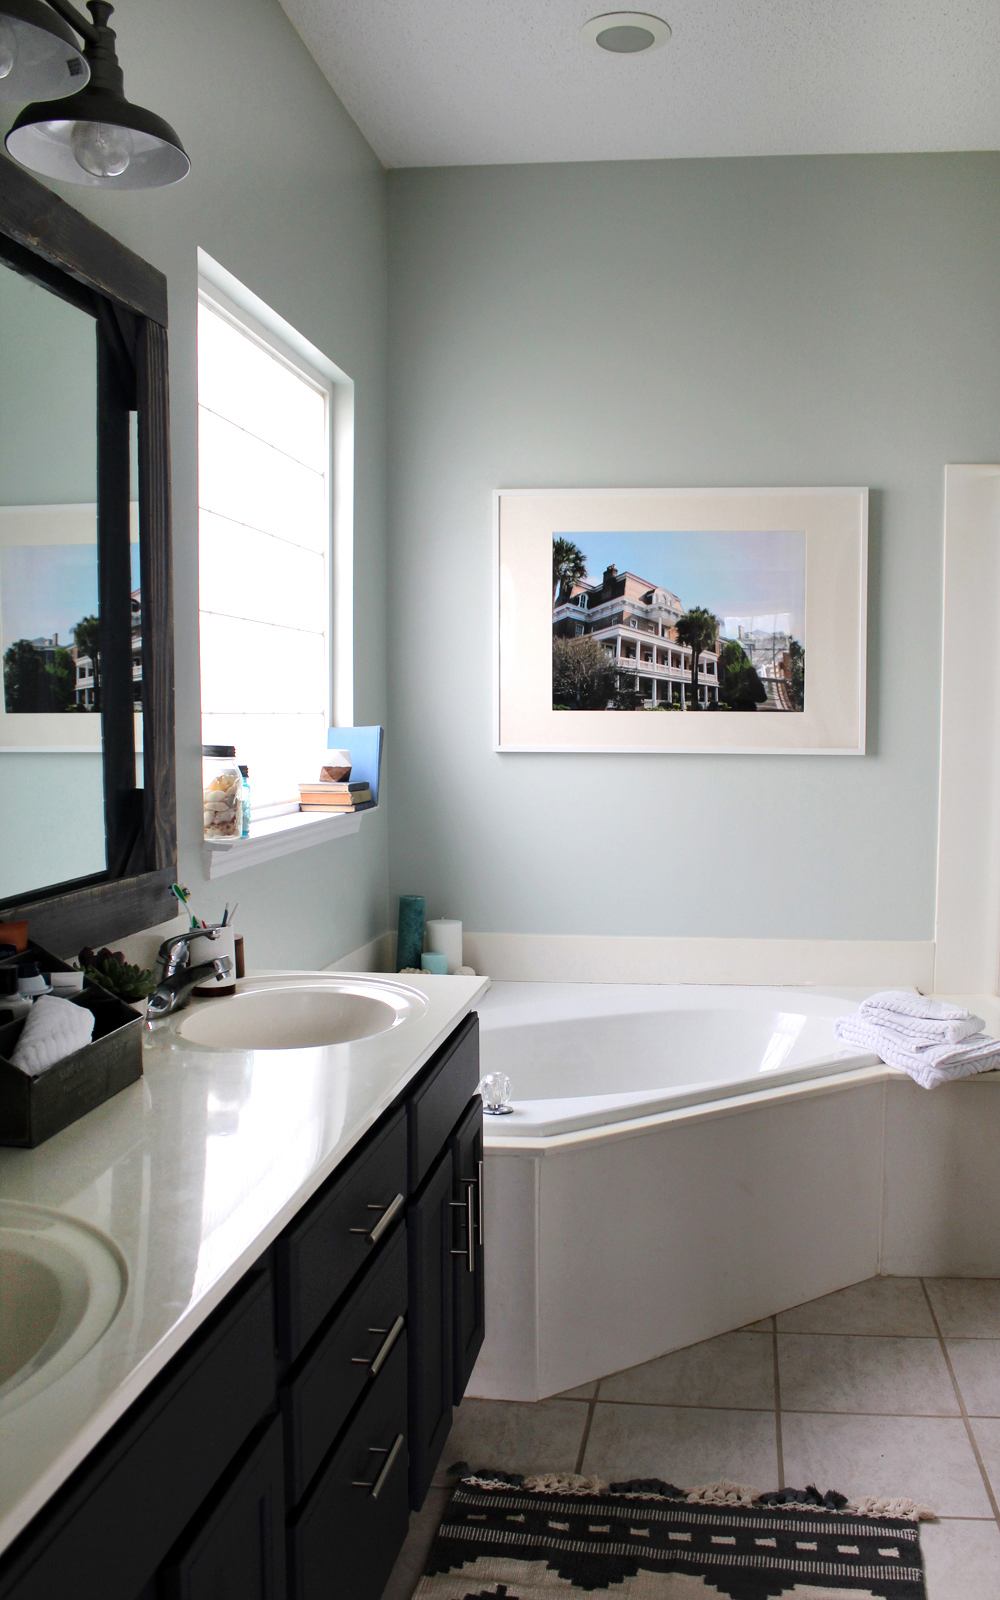 Superieur How To Update Your Master Bathroom For $300